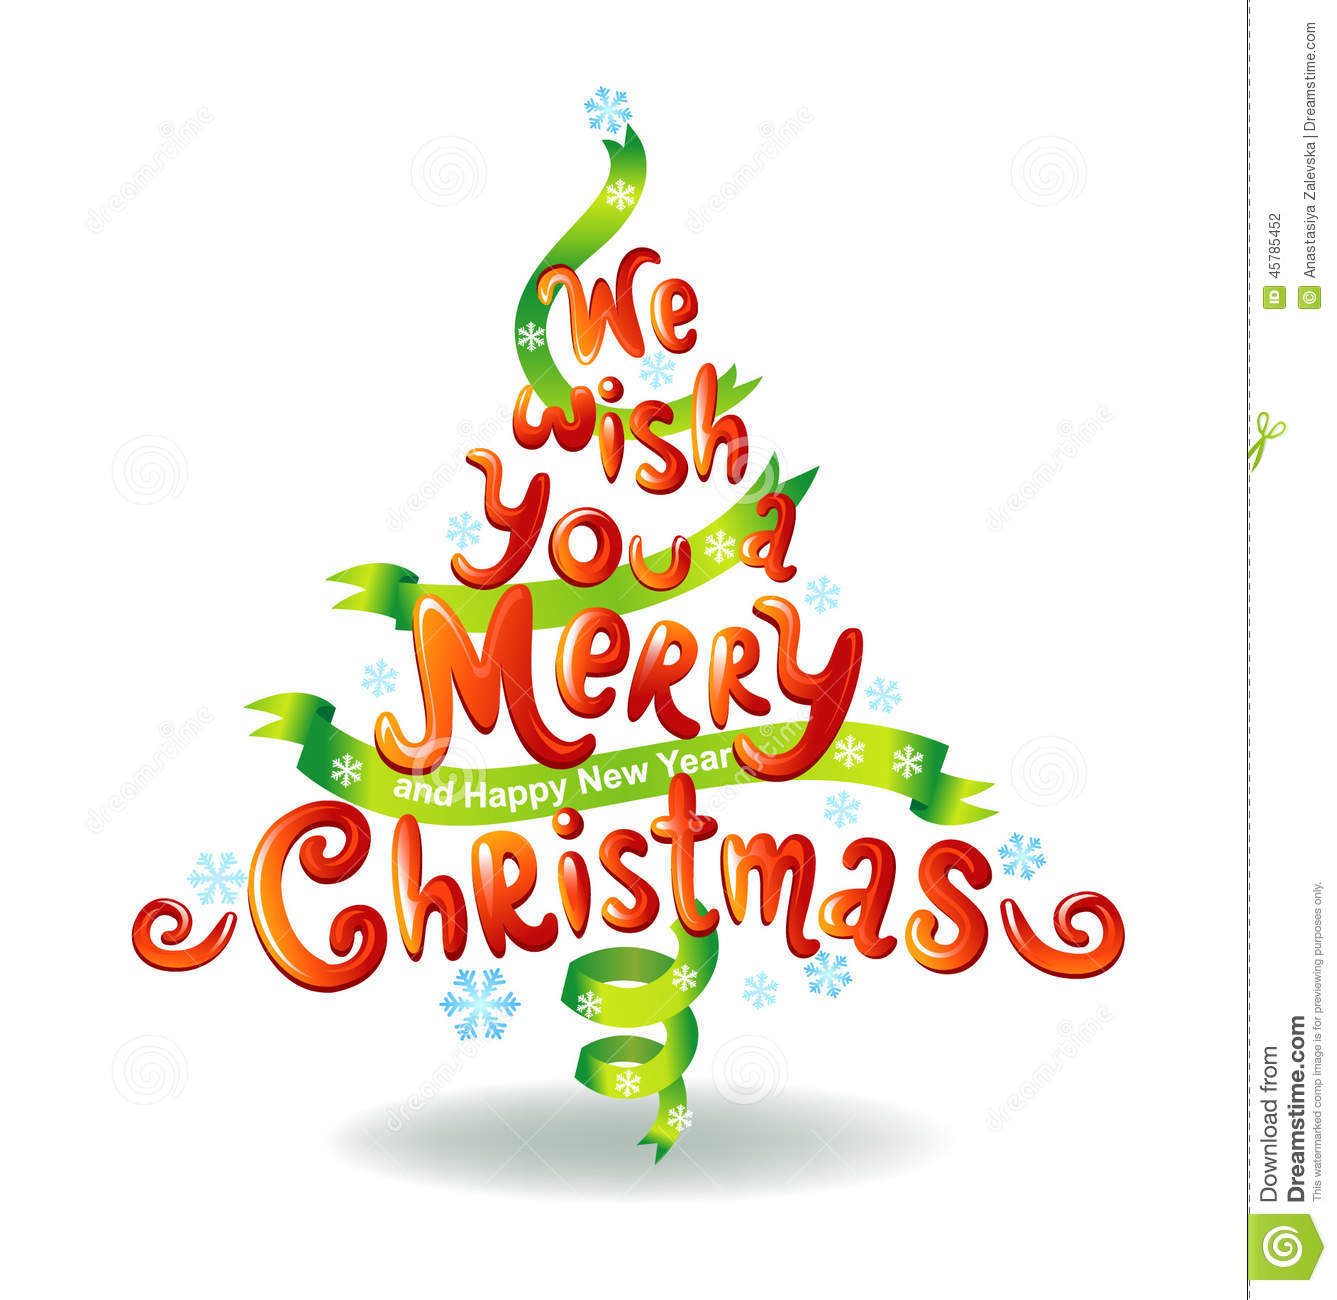 We Wish You A Merry Christmas Stock Illustration - Image: 45785452